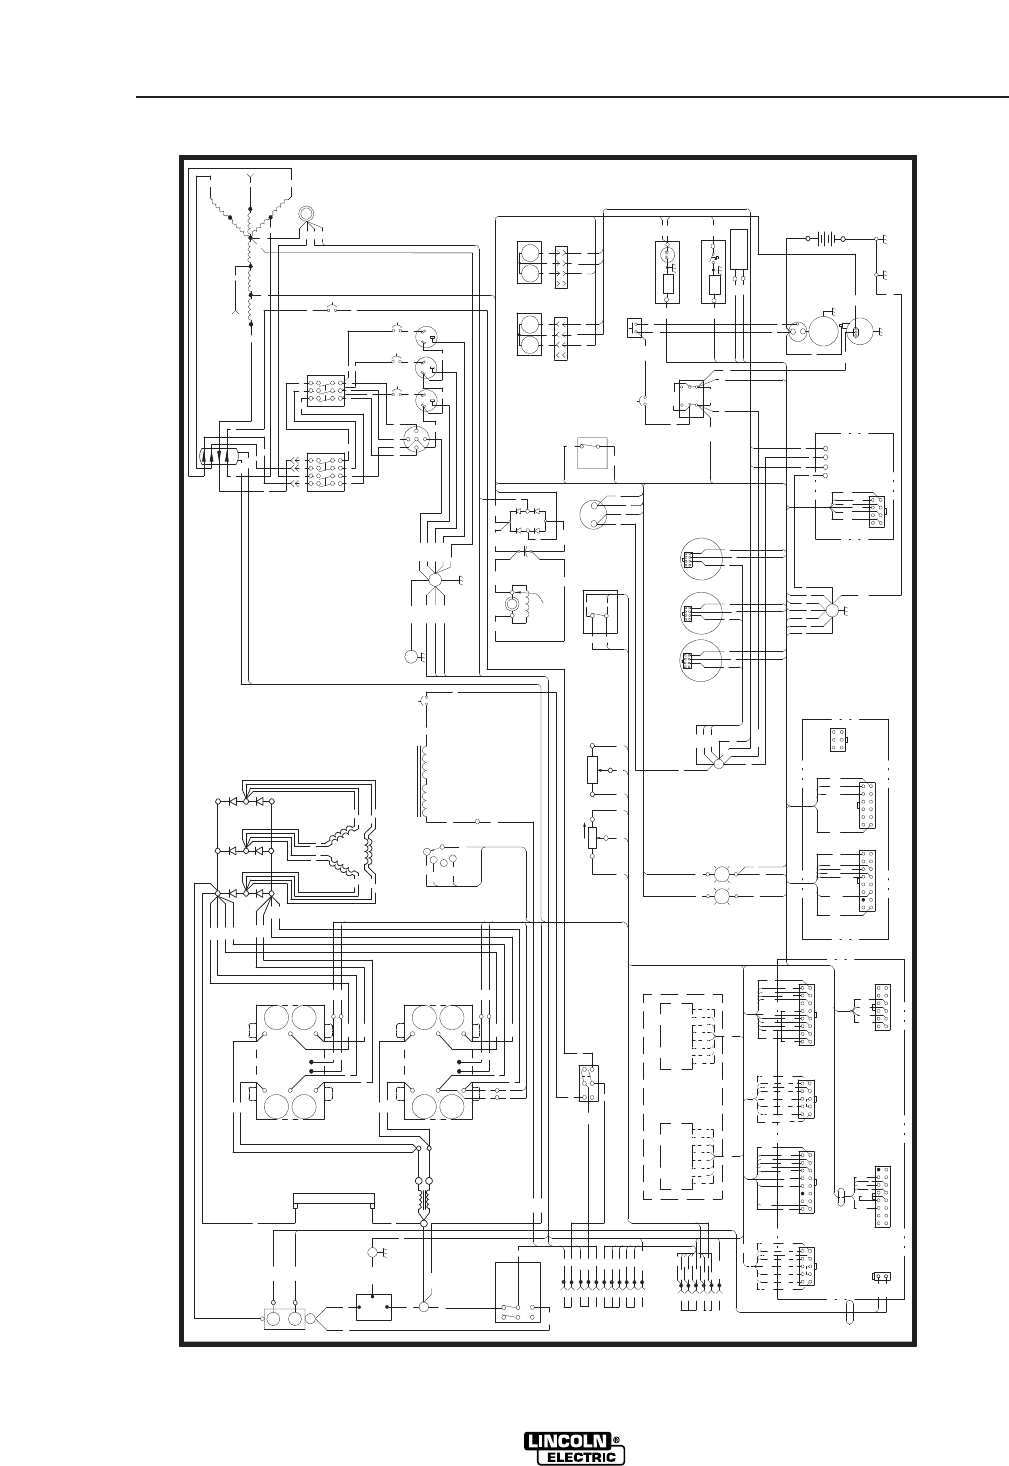 cf486d68 a01d 40ef 9c47 9853105f9541 bg24 page 36 of lincoln electric welding system 575 user guide 67 lincoln wiring diagram at mifinder.co